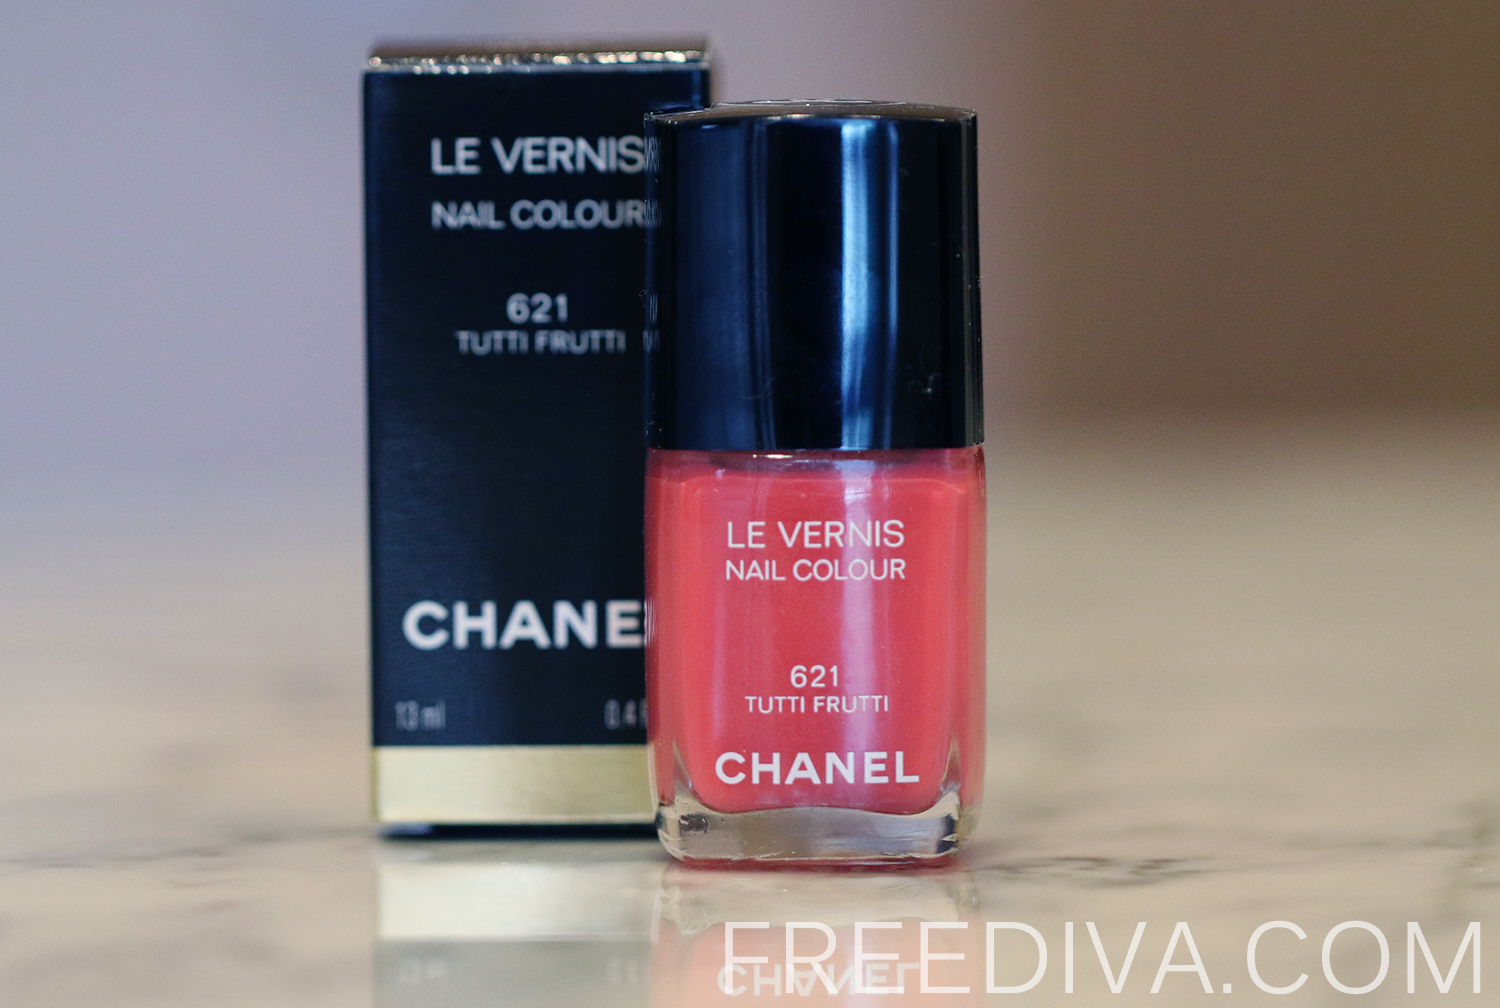 Chanel Nail Color in 621 Tutti Frutti, Summer 2014 Limited Edition ...